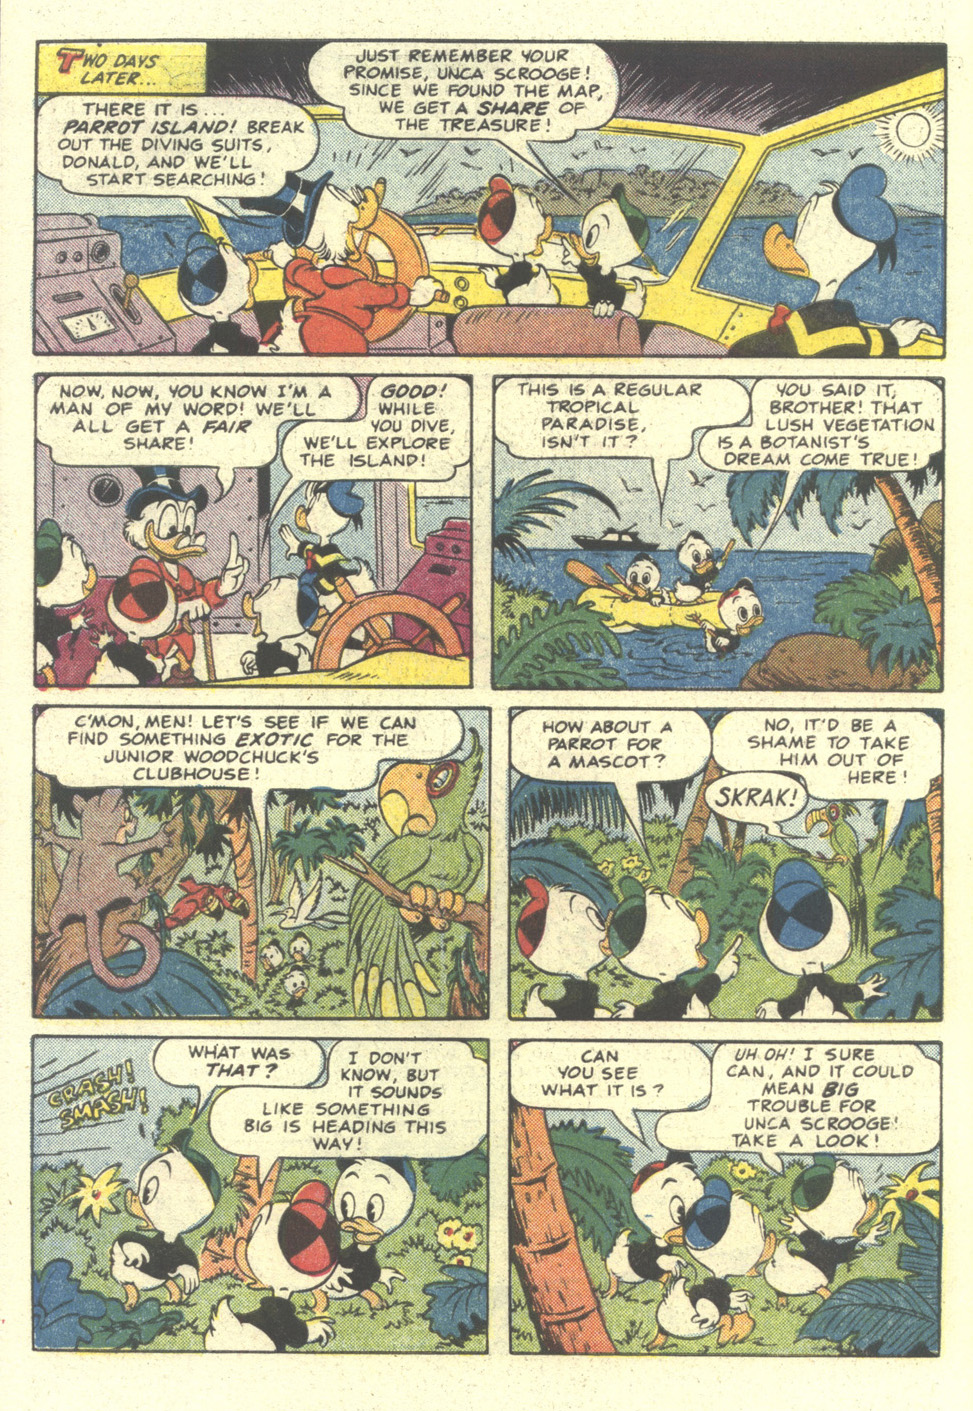 efree.com/uncle-scrooge-1 #193 - English 6